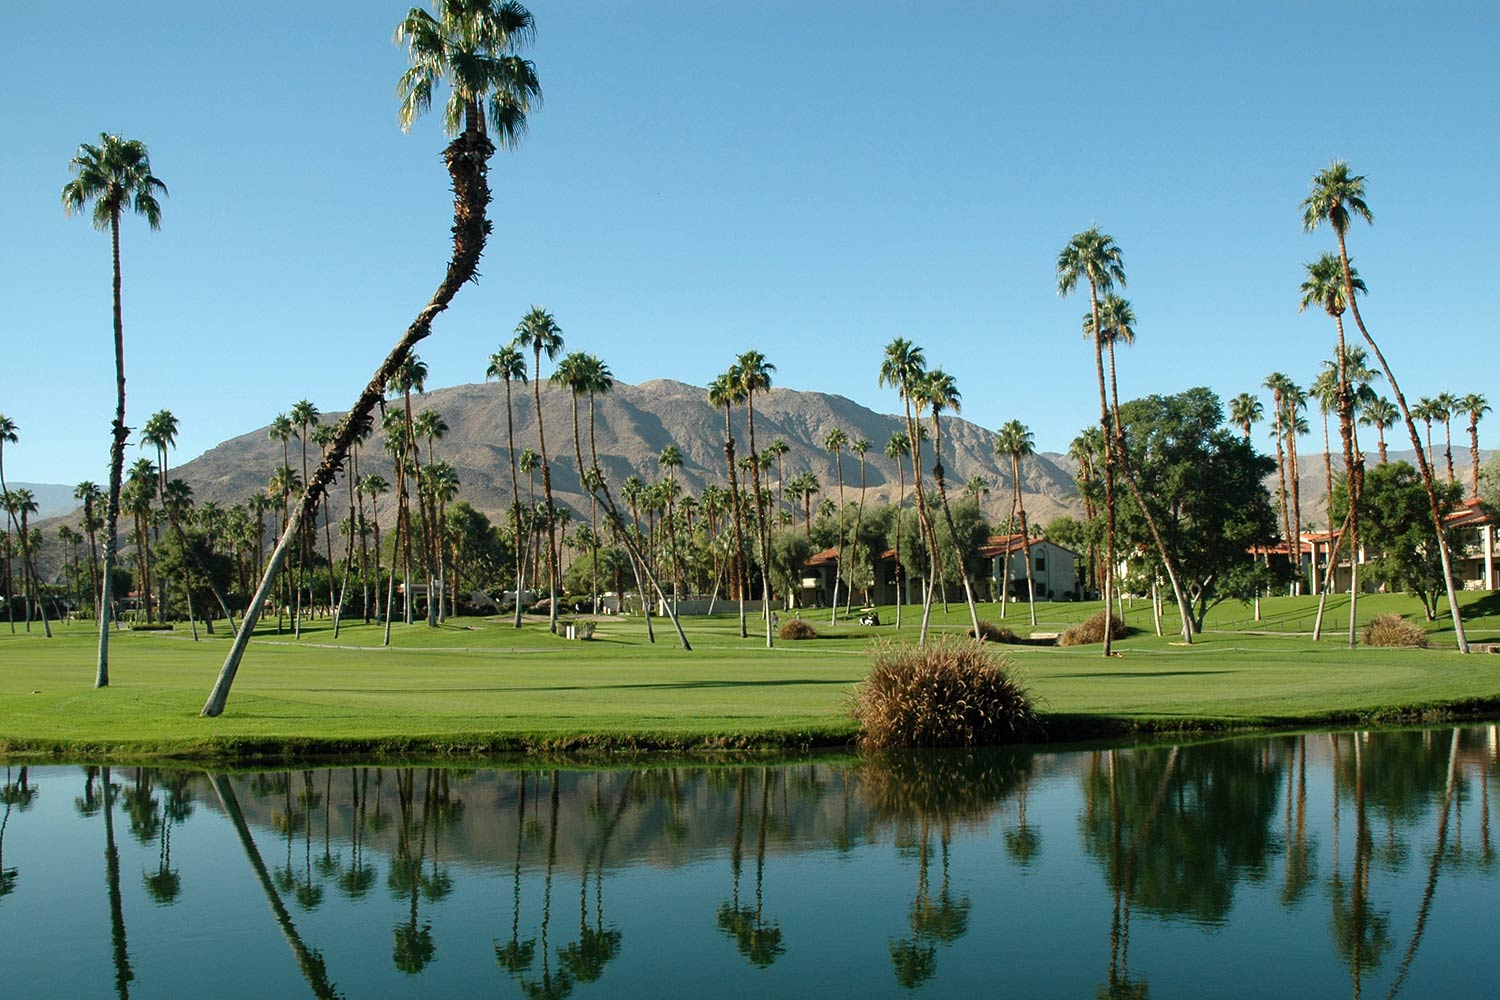 Slender palm trees dot green grass with a large hill in the background in Palm Springs